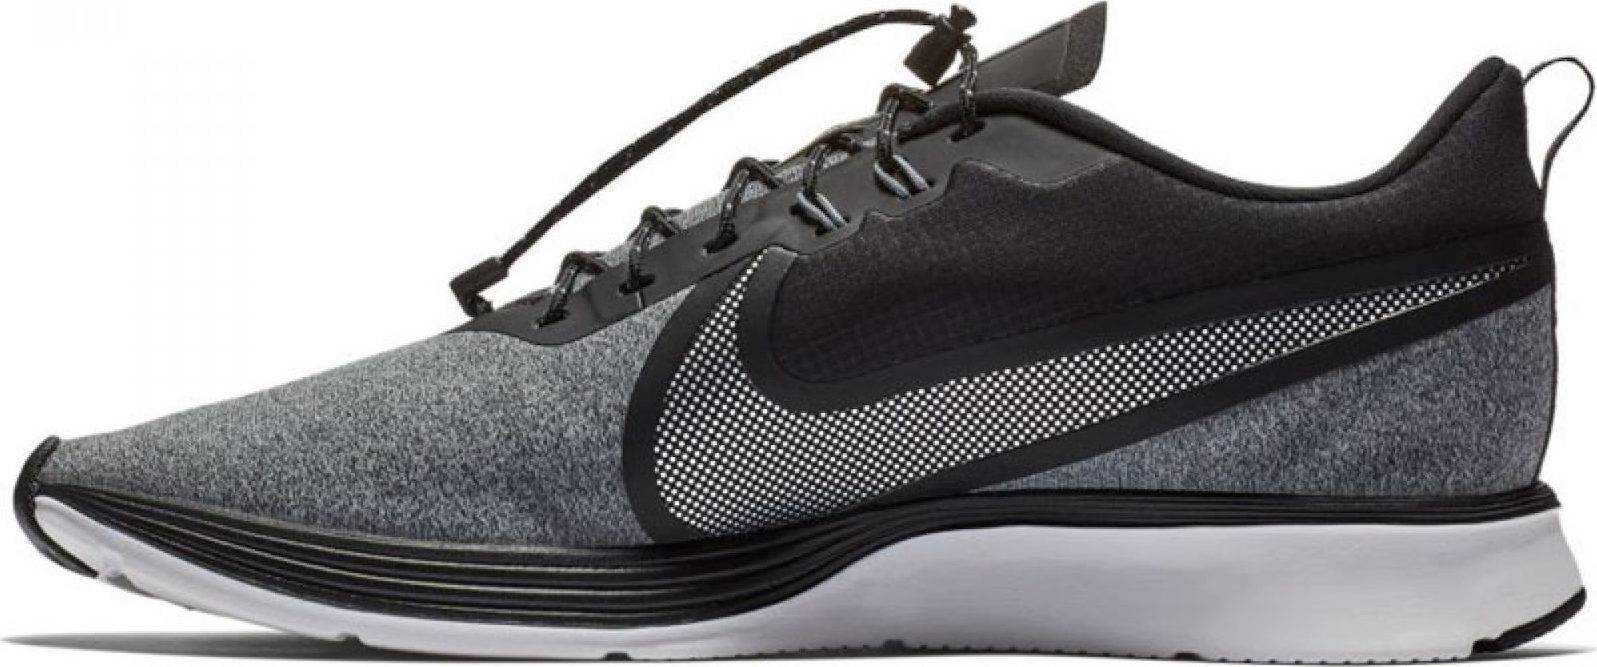 NIKE Кроссовки мужские Zoom Strike 2 Shield, grey, black. Фото N5